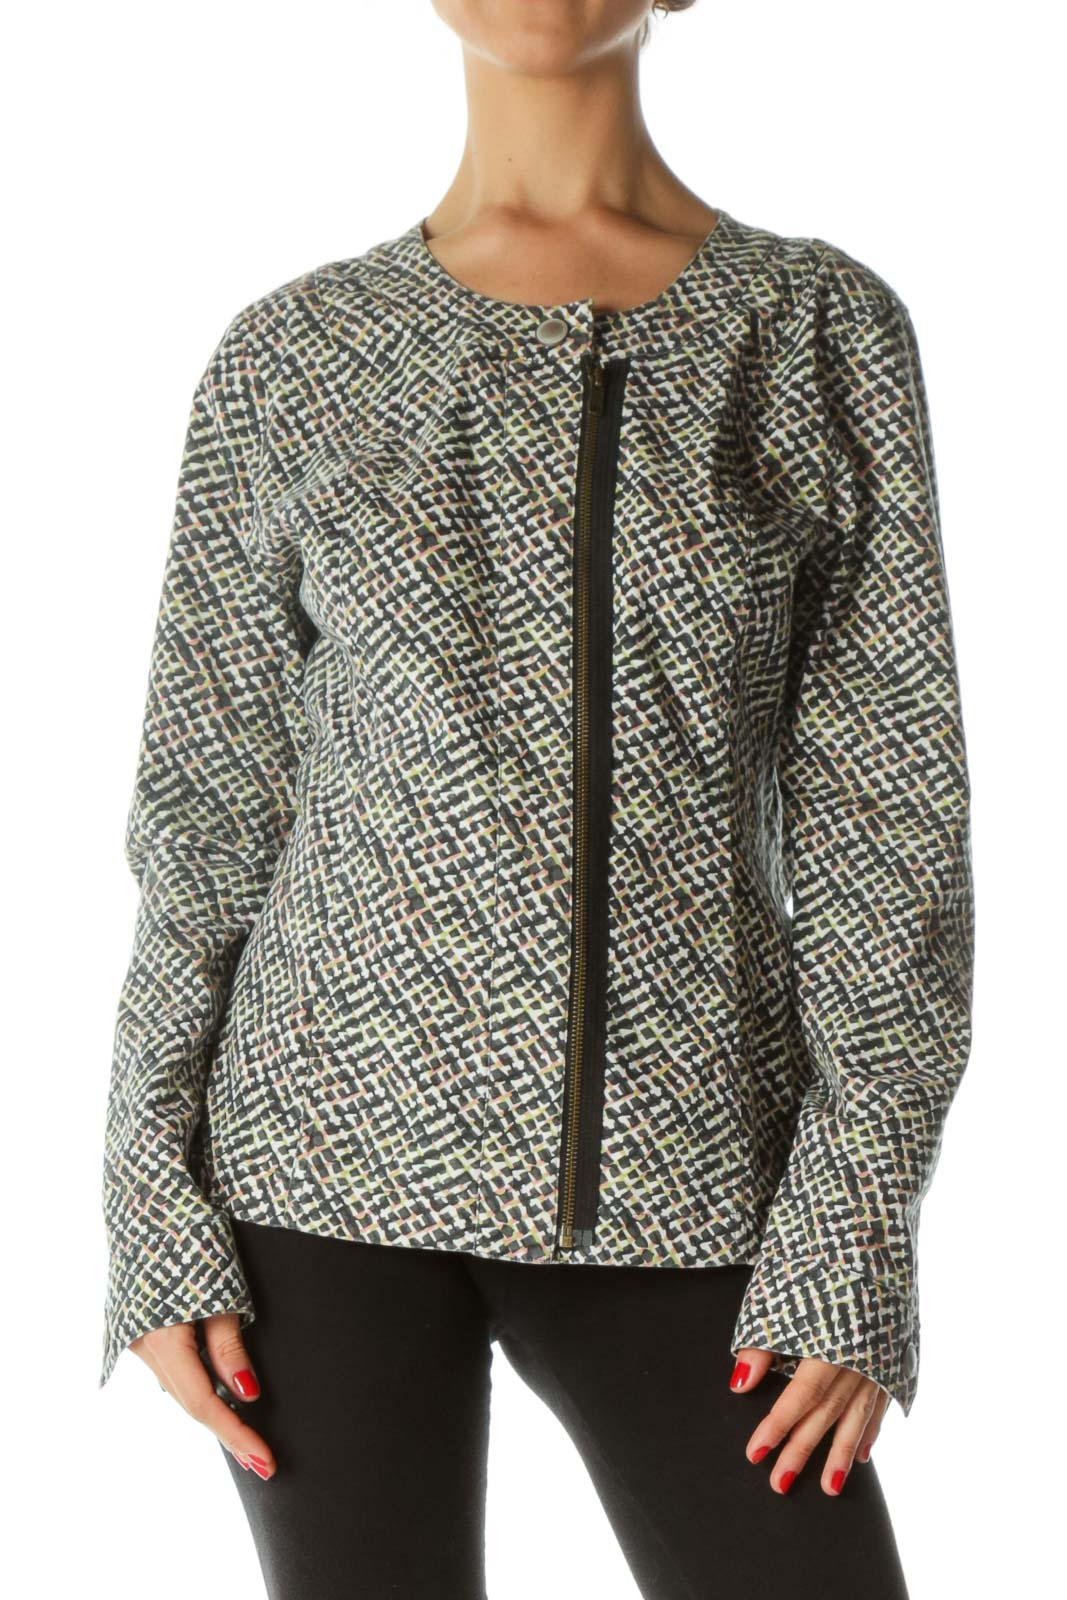 Multicolored Print Round Neck Snap-Button Light-Denim-Feel Pocketed Jacket